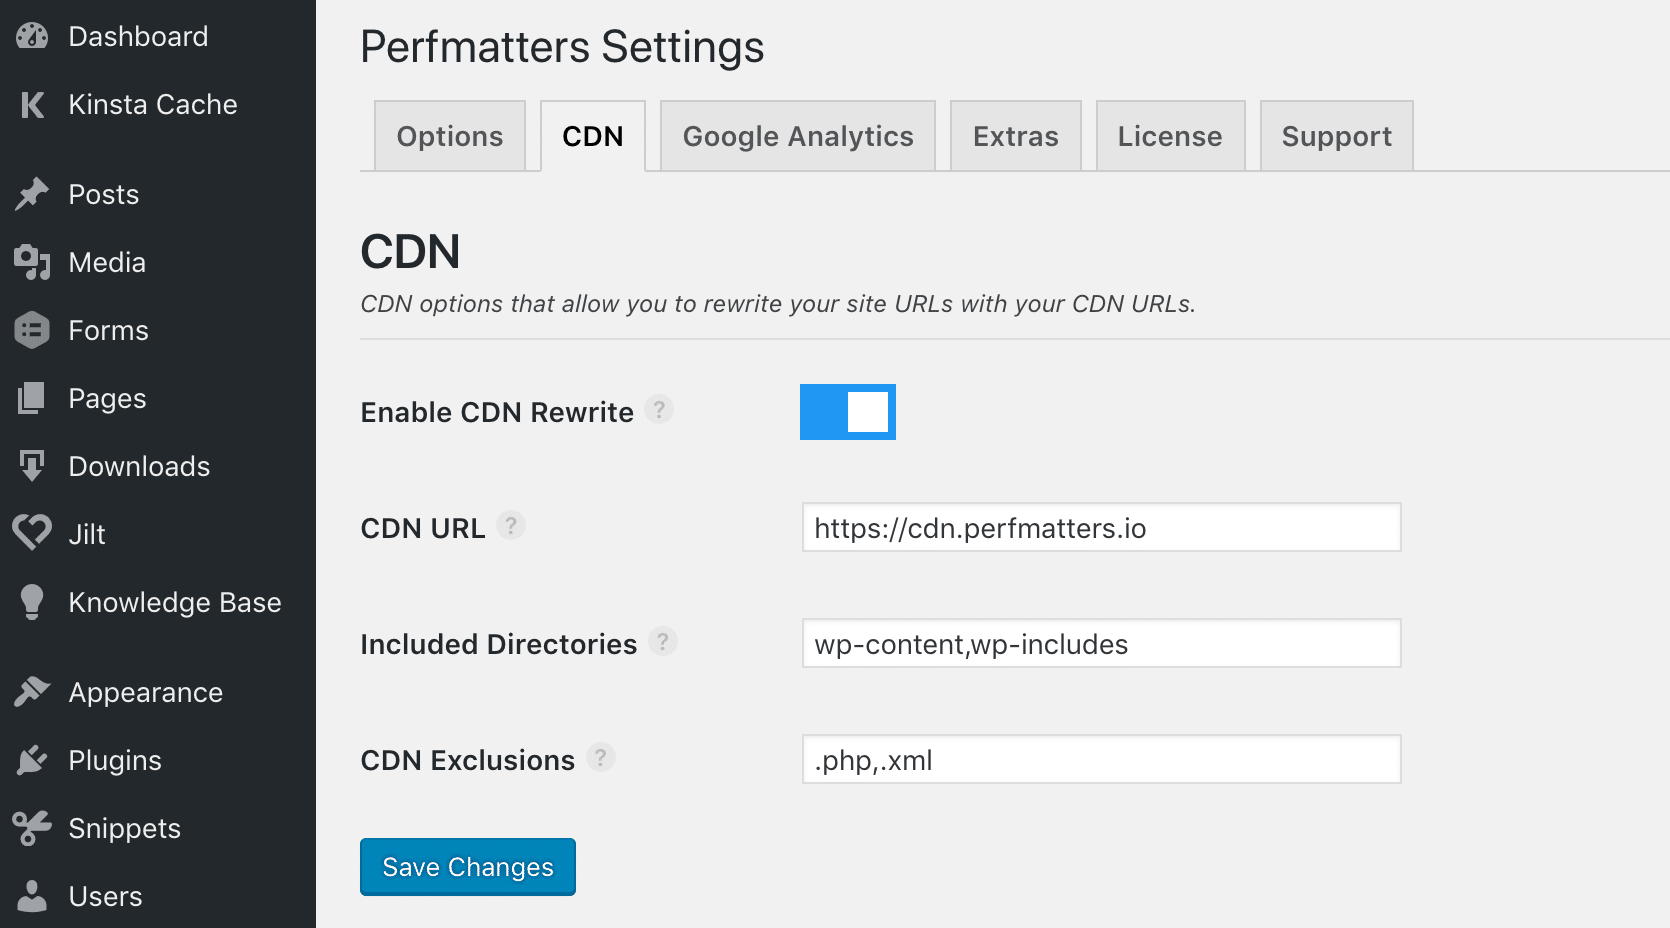 "Enable CDN in WordPress with Perfmatters"" width=""1670"" height=""928"" srcset=""https://webypress.fr/wp-content/uploads/2019/08/1566286020_634_Comment-accelerer-votre-site-WordPress-Guide-Ultimate-2019.png 1670w, https://kinsta.com/wp-content/uploads/2018/11/enable-cdn-in-wordpress-perfmatters-300x167.png 300w, https://kinsta.com/wp-content/uploads/2018/11/enable-cdn-in-wordpress-perfmatters-768x427.png 768w, https://kinsta.com/wp-content/uploads/2018/11/enable-cdn-in-wordpress-perfmatters-1024x569.png 1024w, https://kinsta.com/wp-content/uploads/2018/11/enable-cdn-in-wordpress-perfmatters-610x339.png 610w"" sizes=""(max-width: 1670px) 100vw, 1670px"